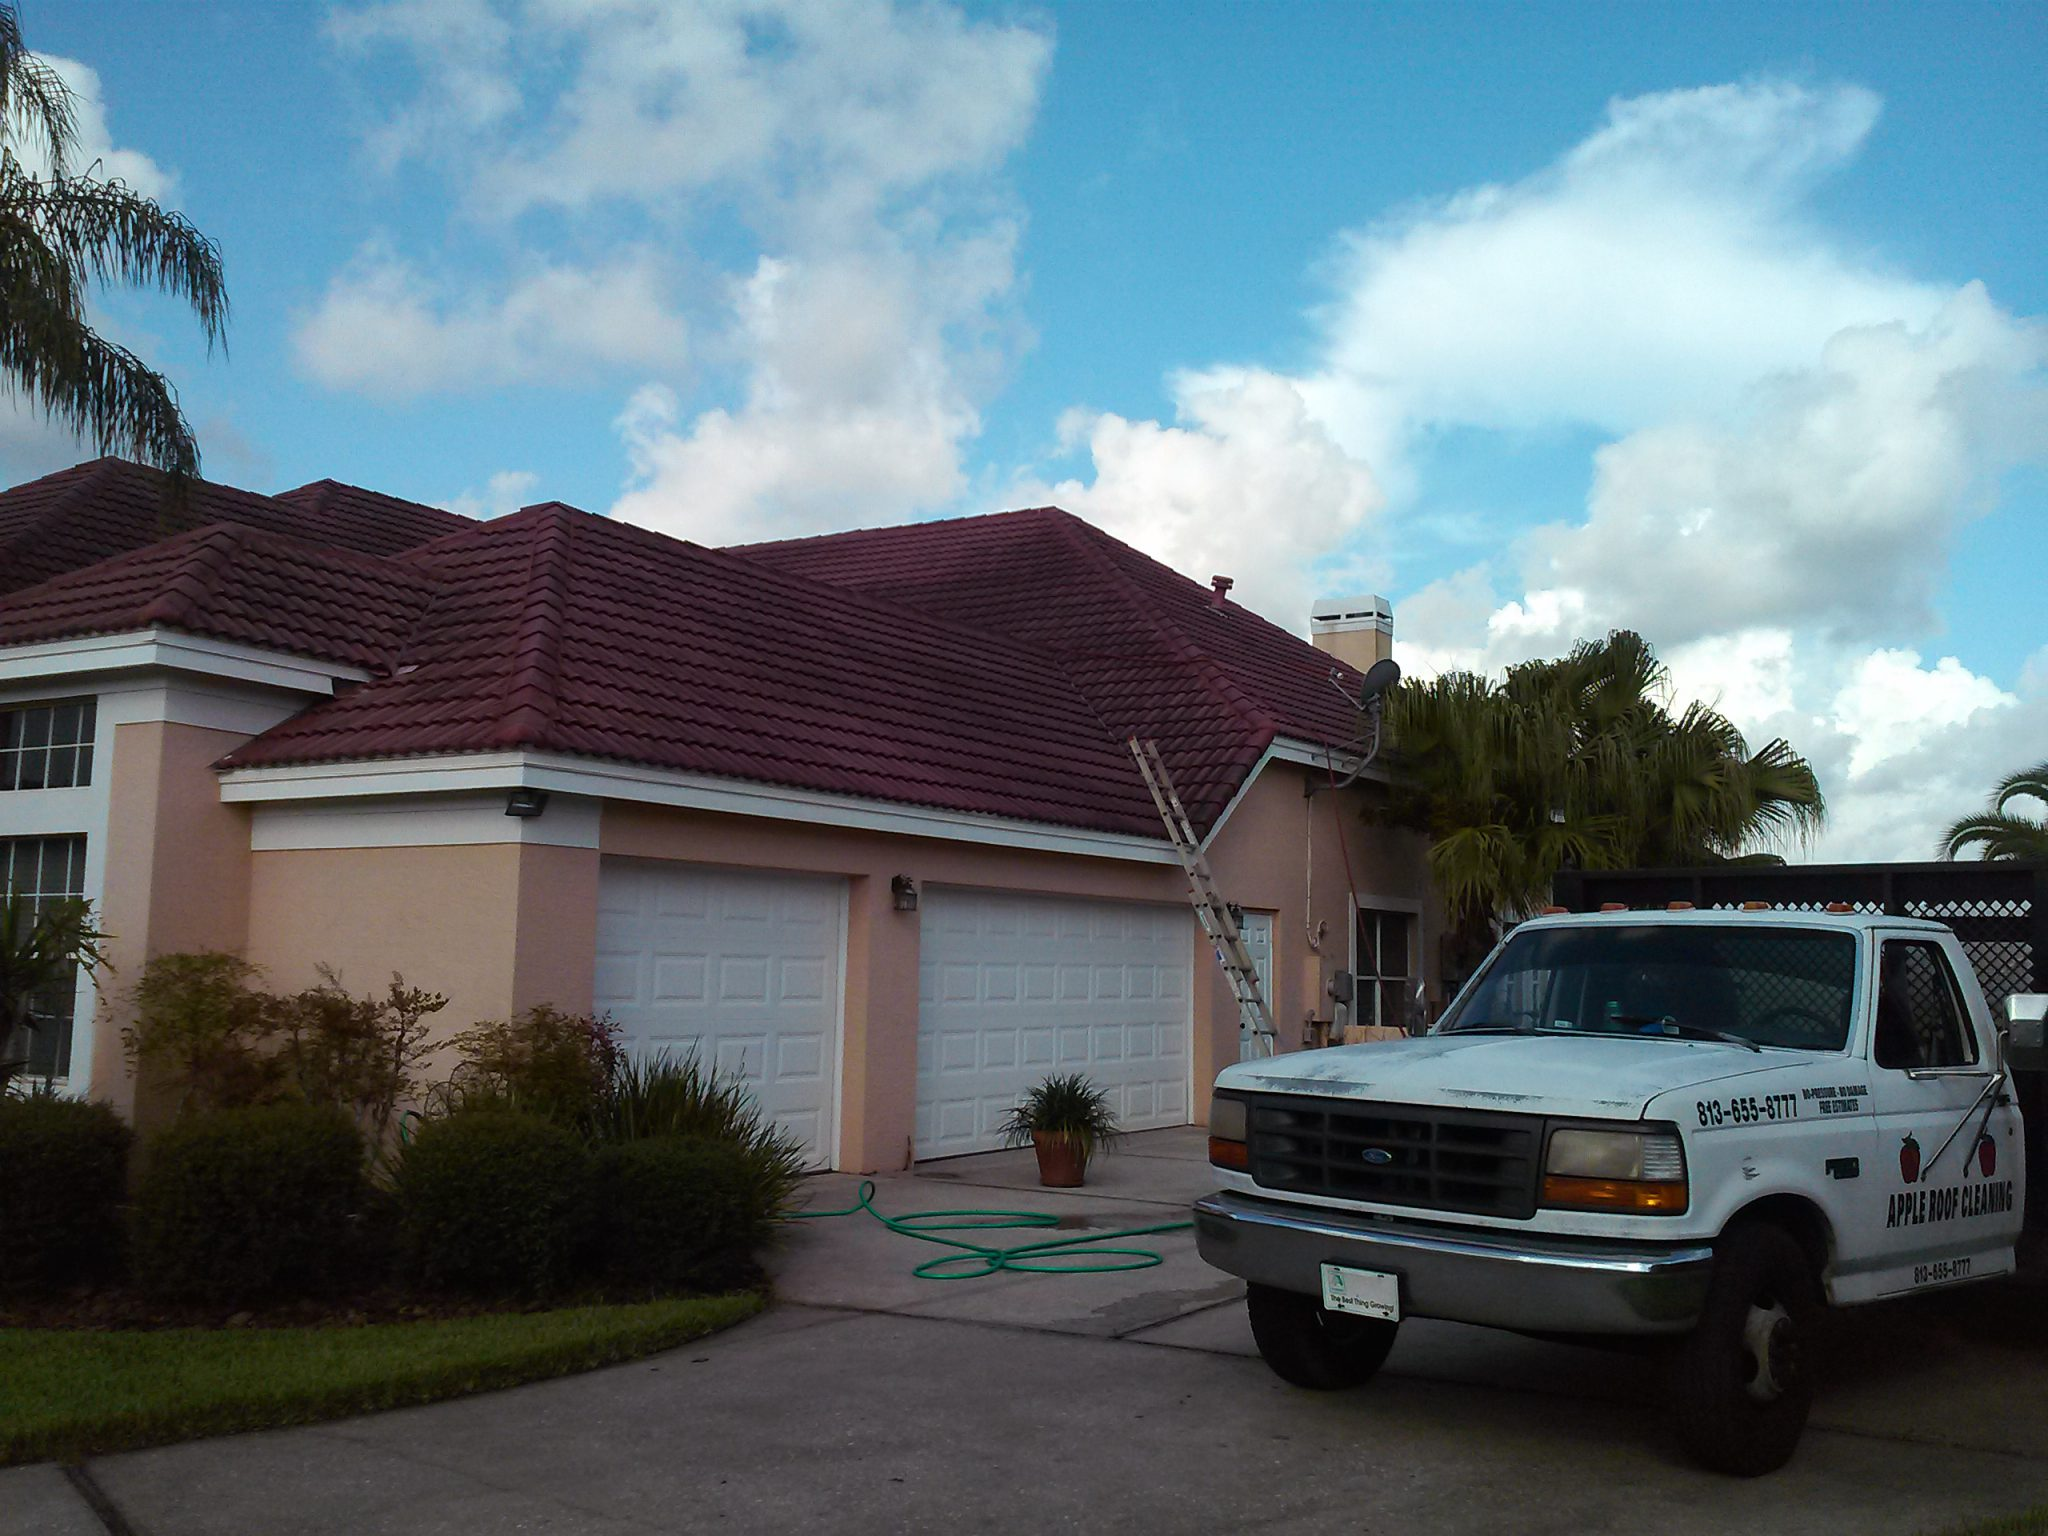 Tampa Palms Barrel Tile Roof Cleaned 8 13 2003 Apple Roof